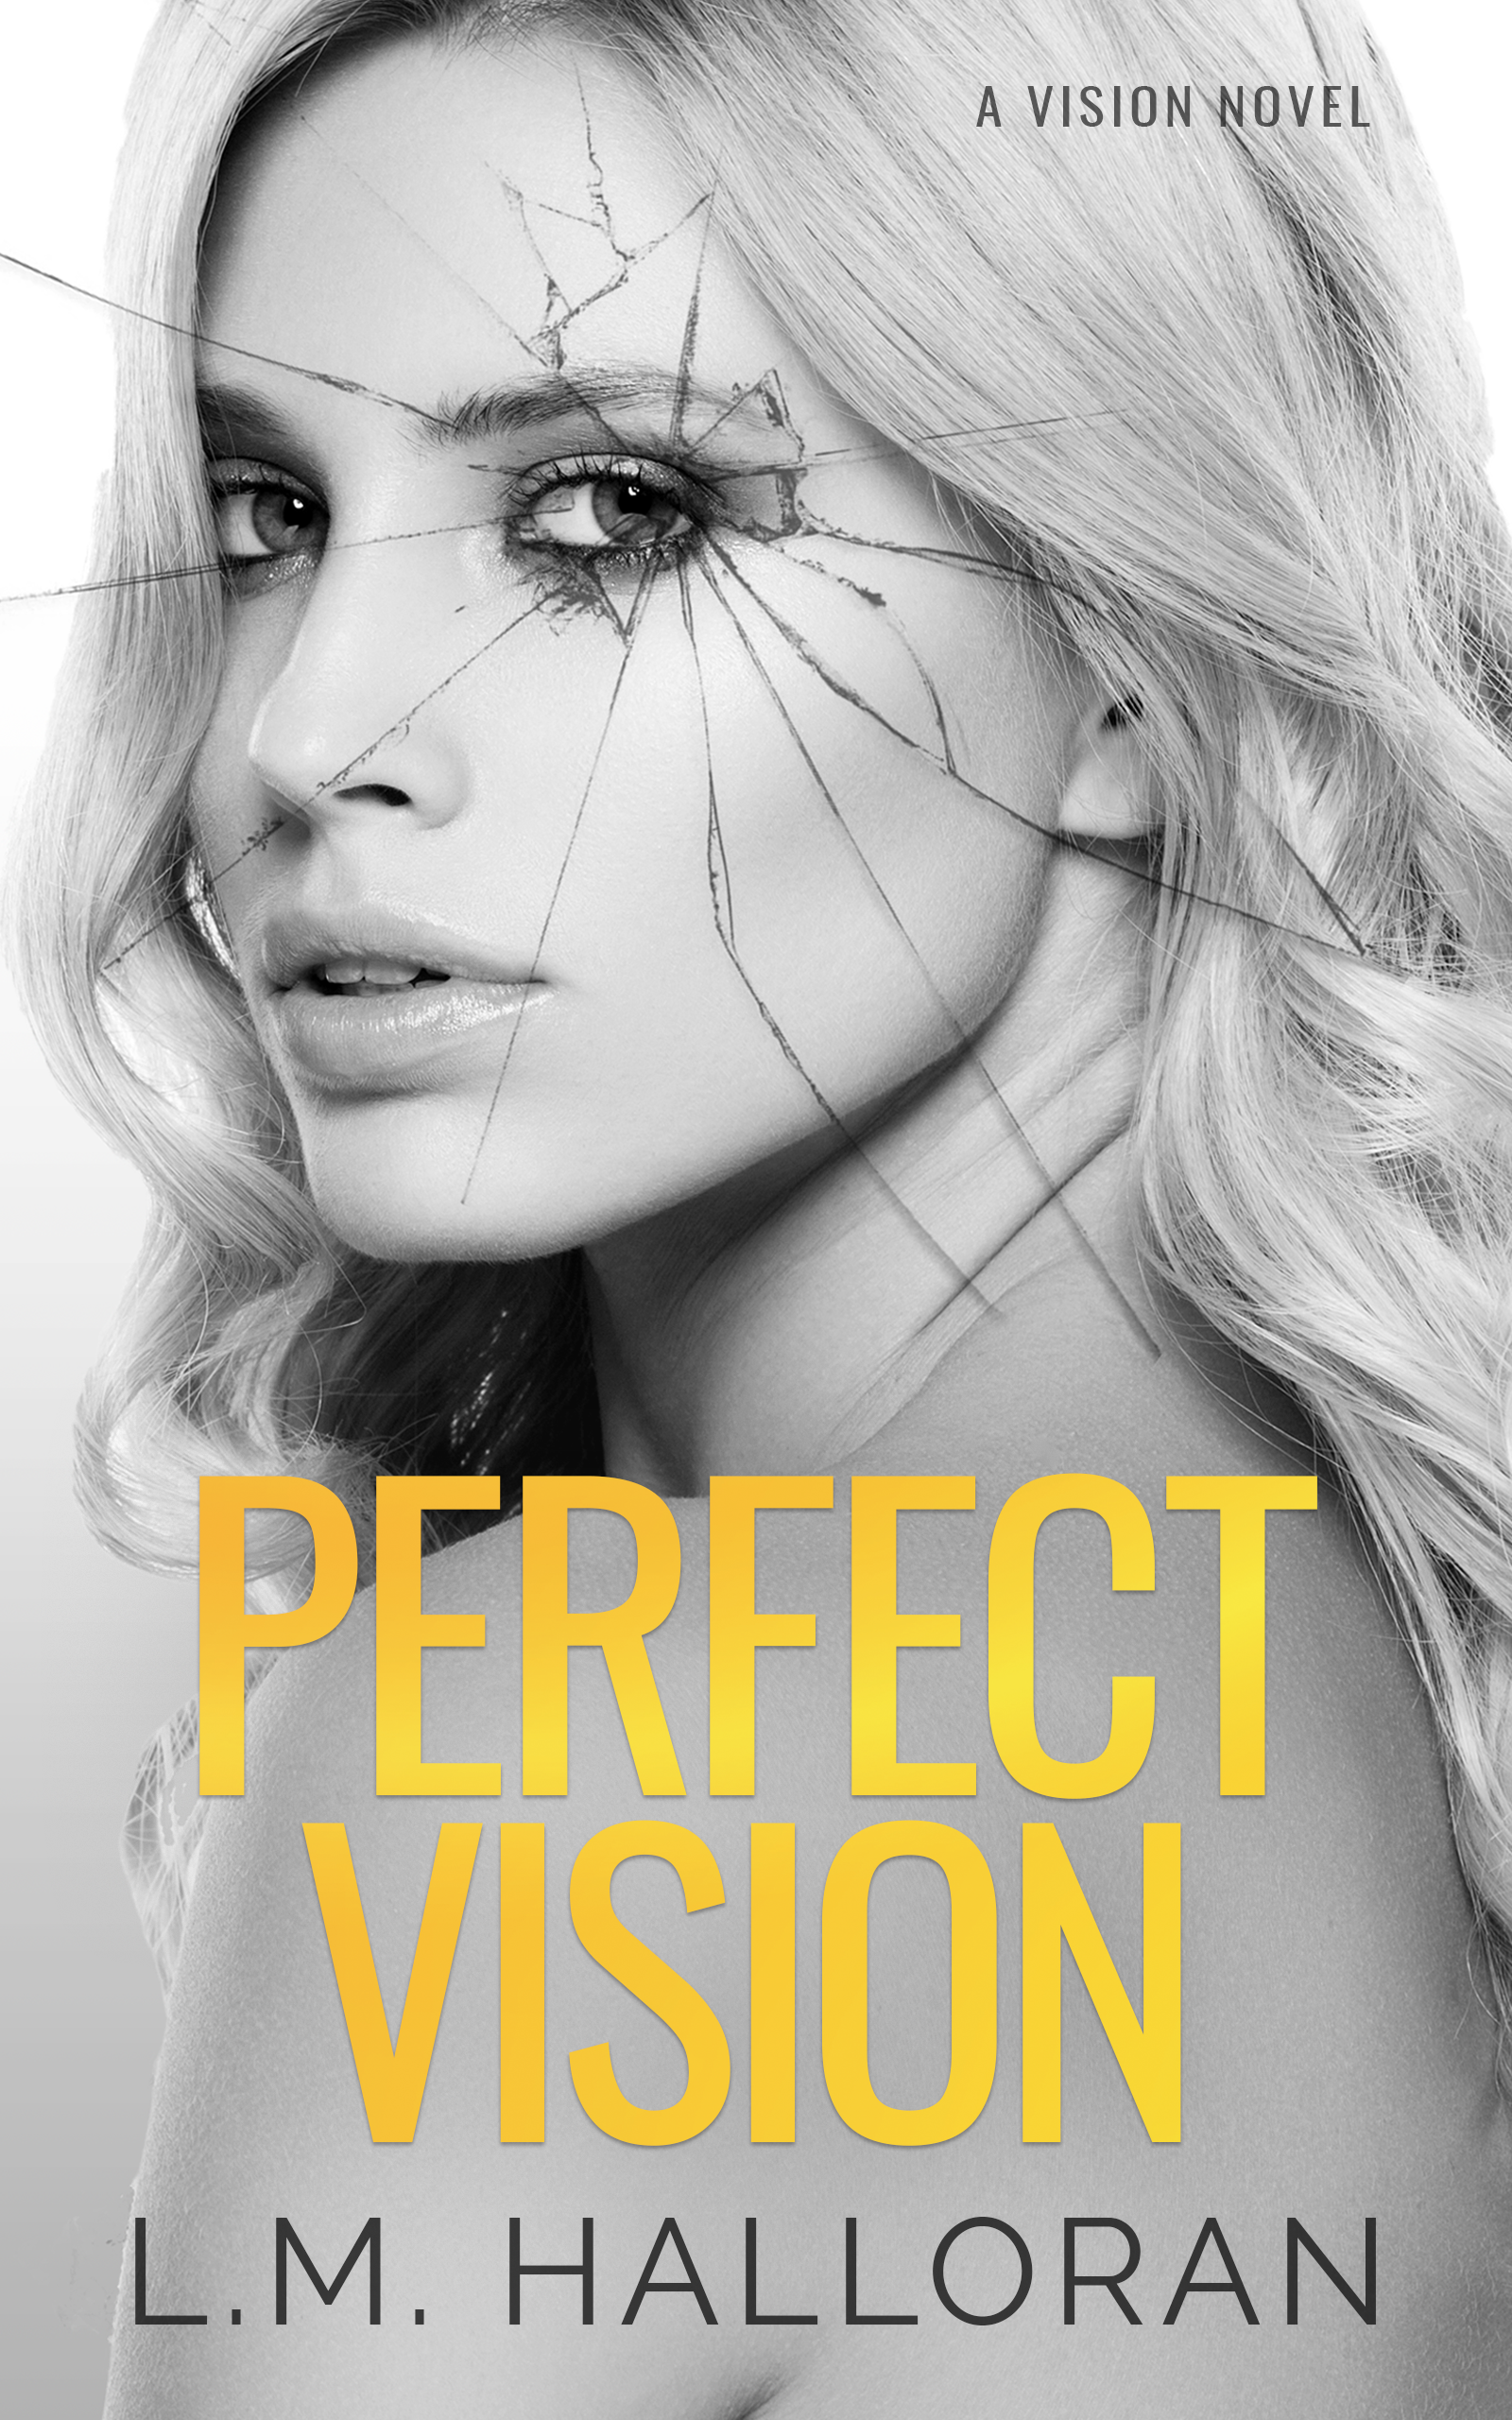 Perfect Vision by L.M. Halloran [Cover Reveal]